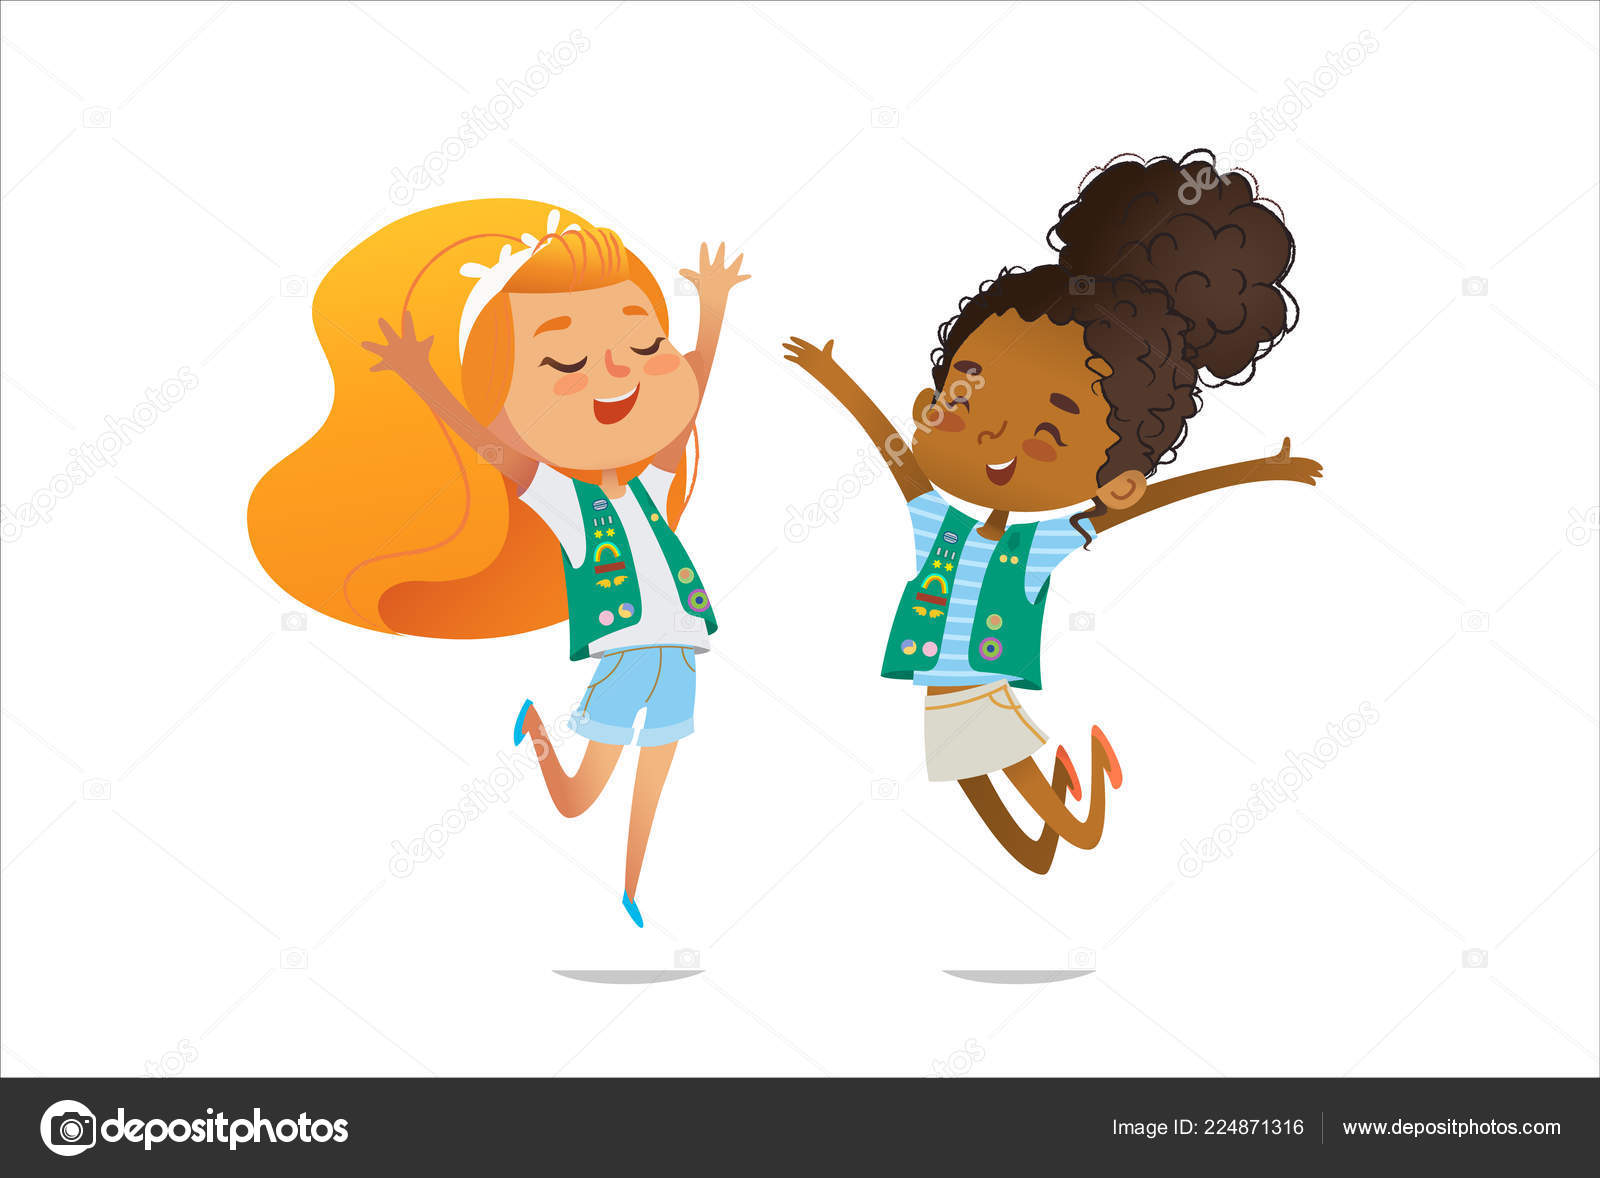 Presenting girl scout badges | Young smiling girls scout